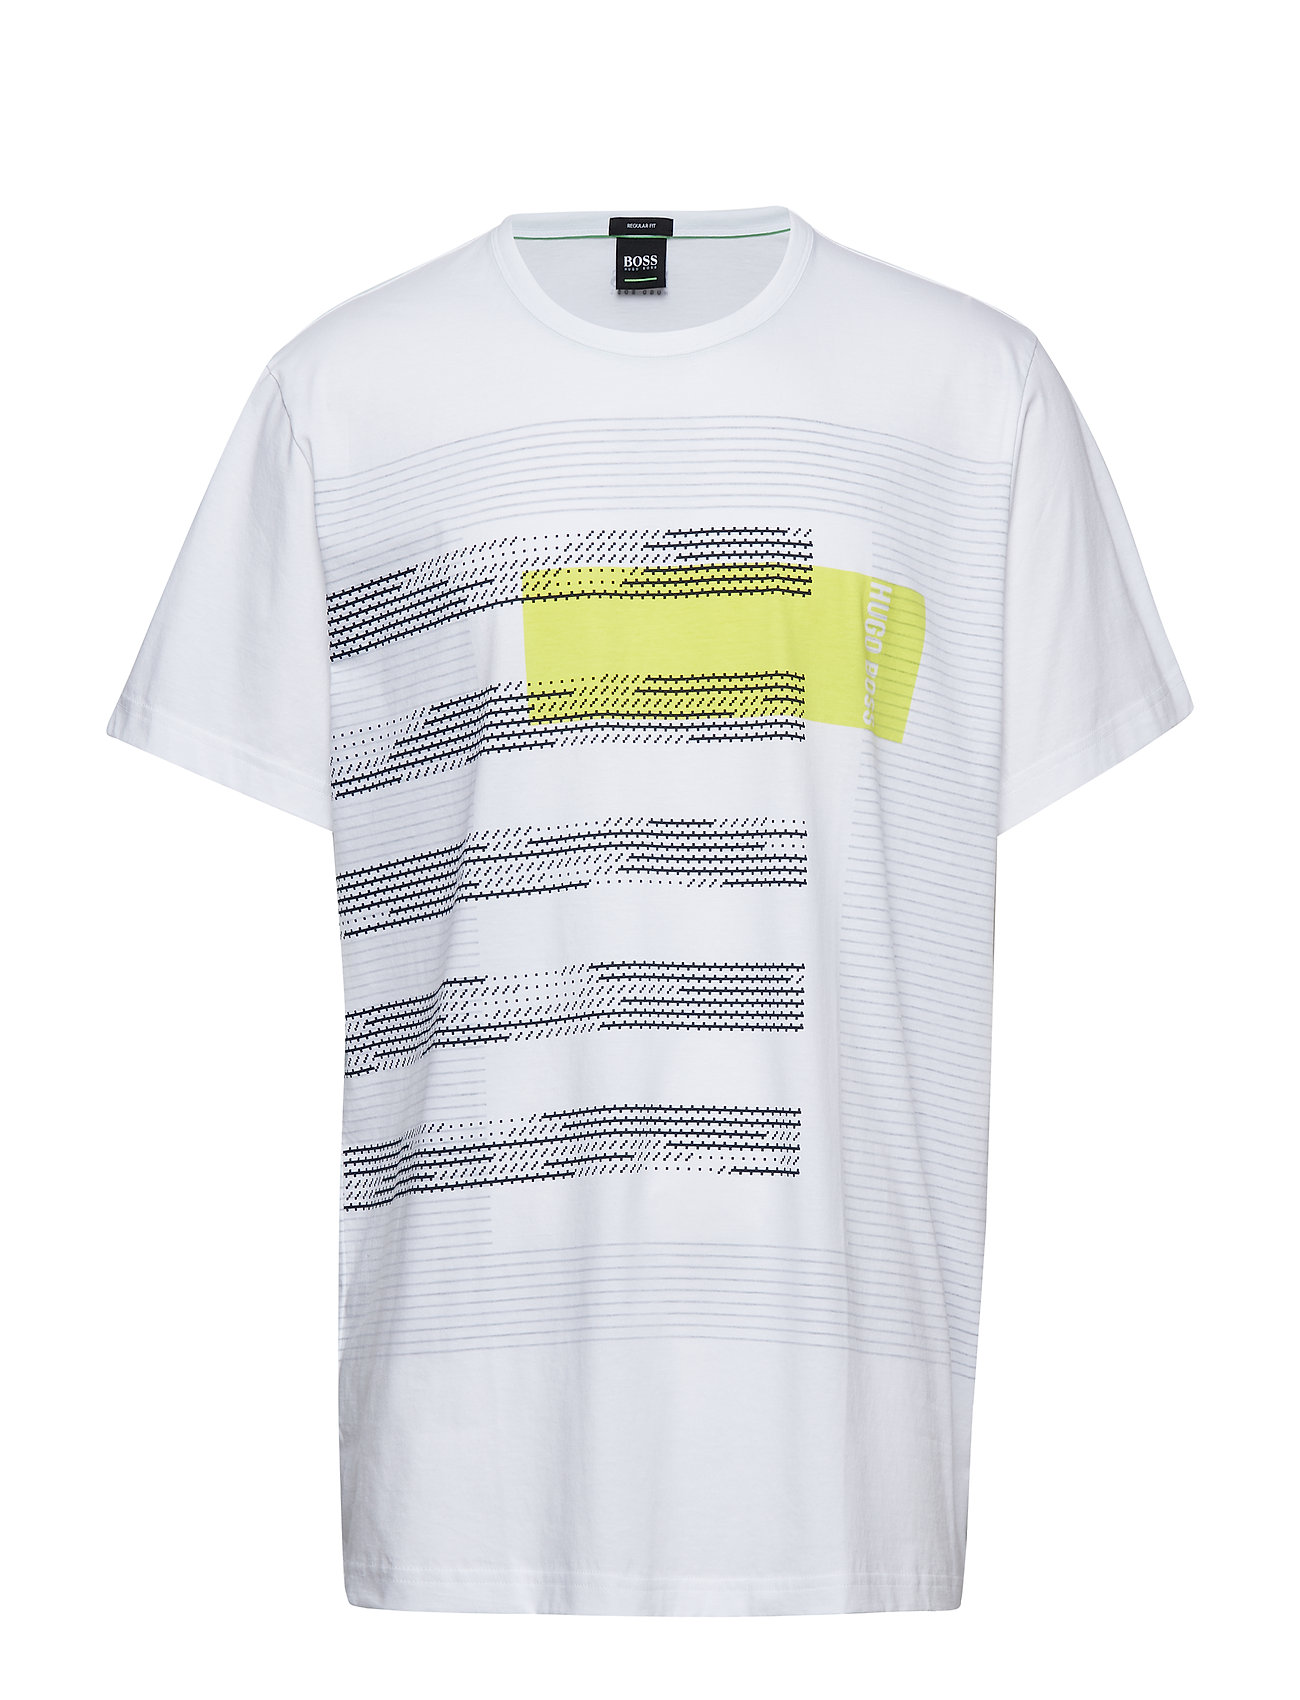 Tee 10 - Boss Athleisure Wear